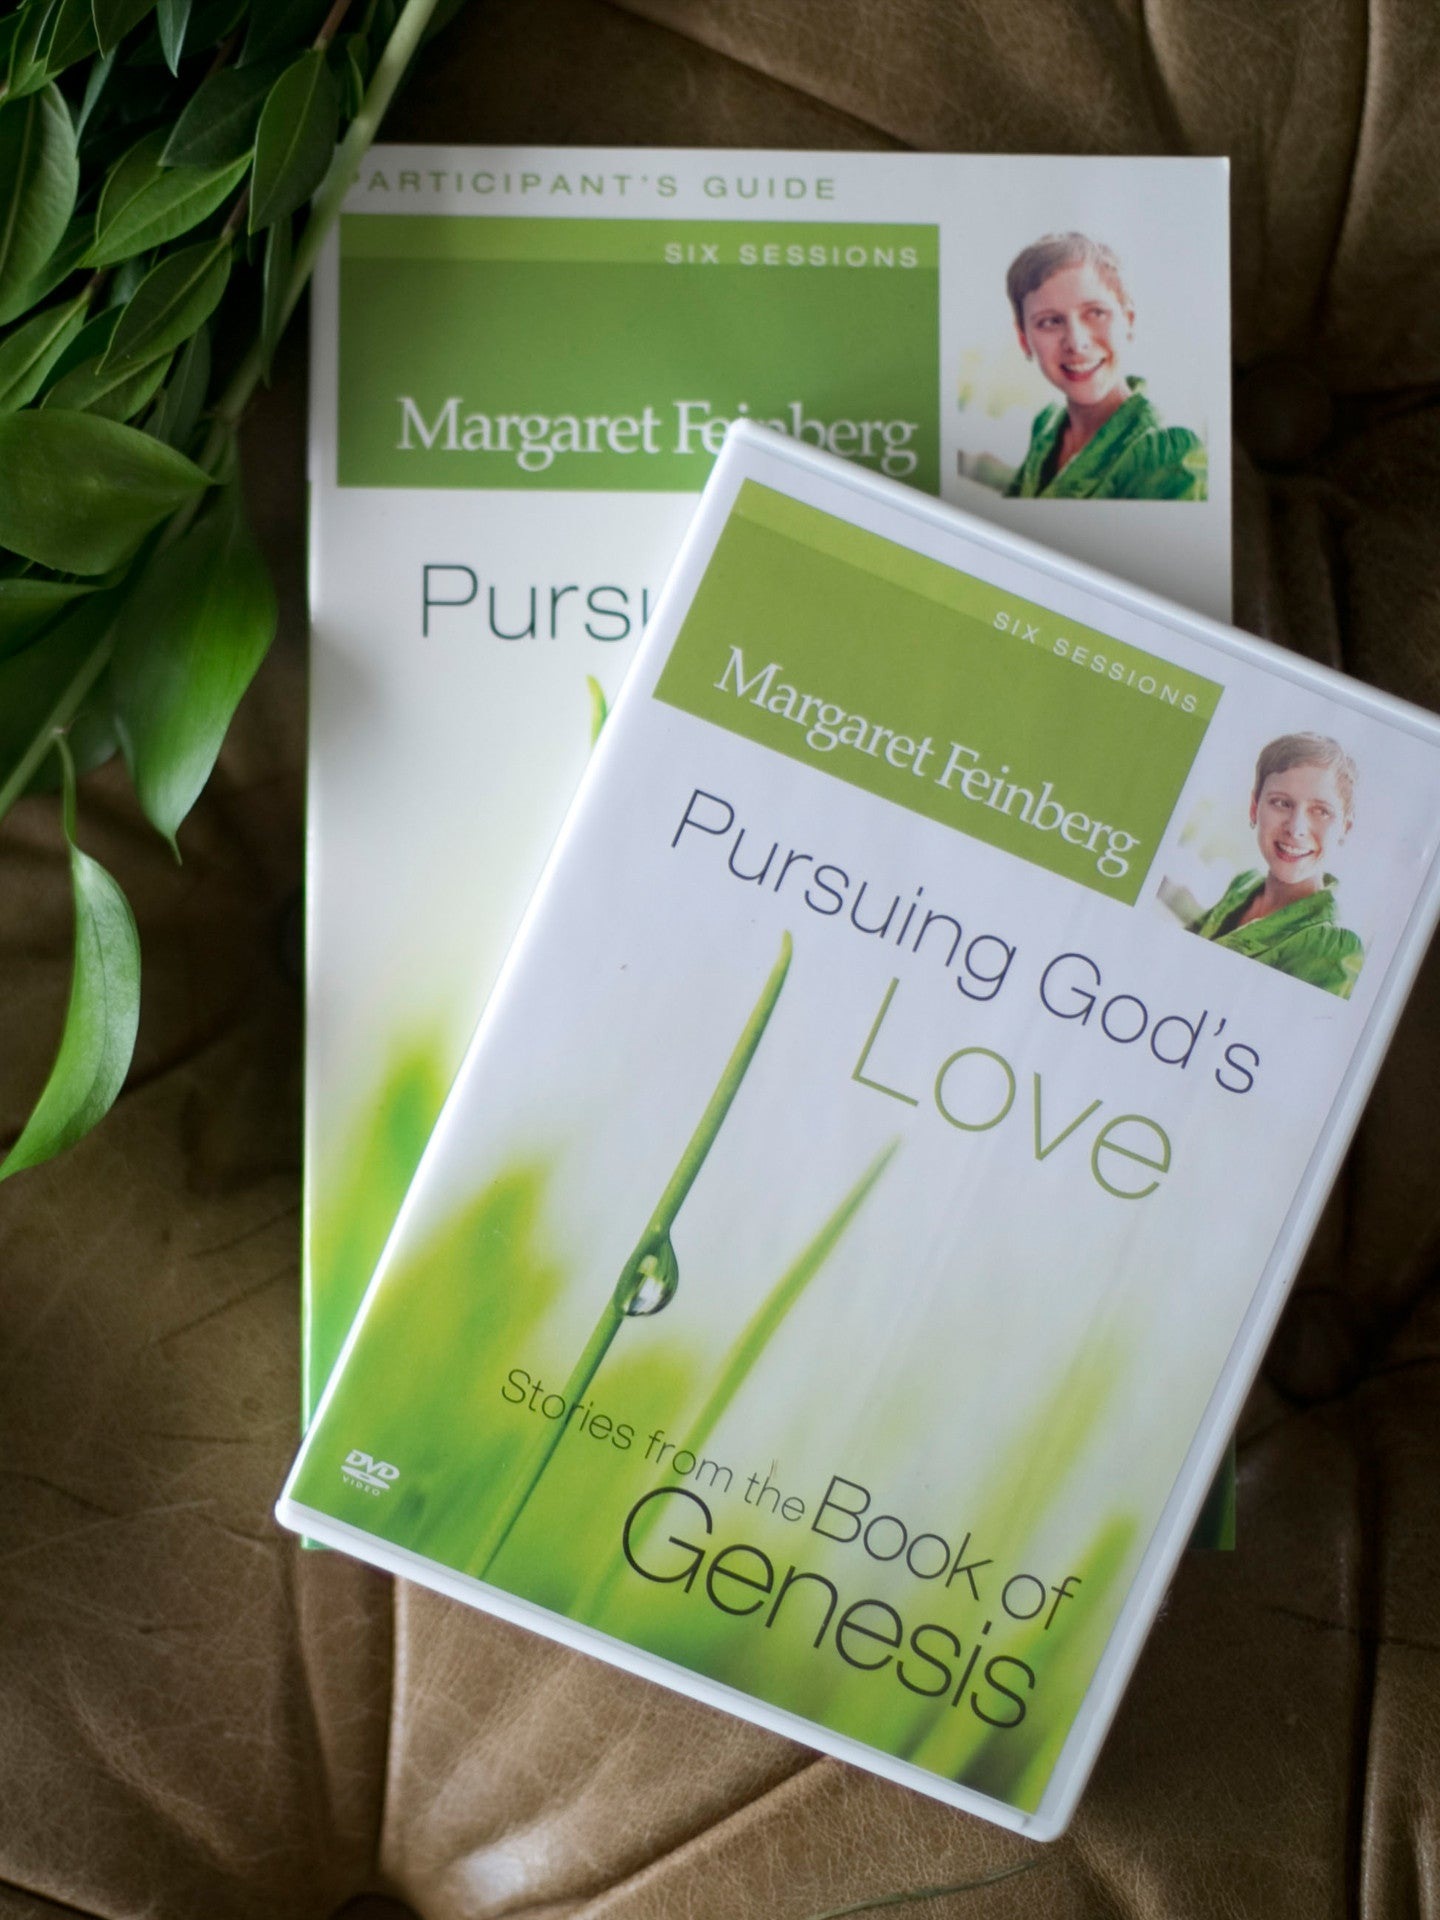 Pursuing God's Love: Stories from the Book of Genesis Workbook with DVD